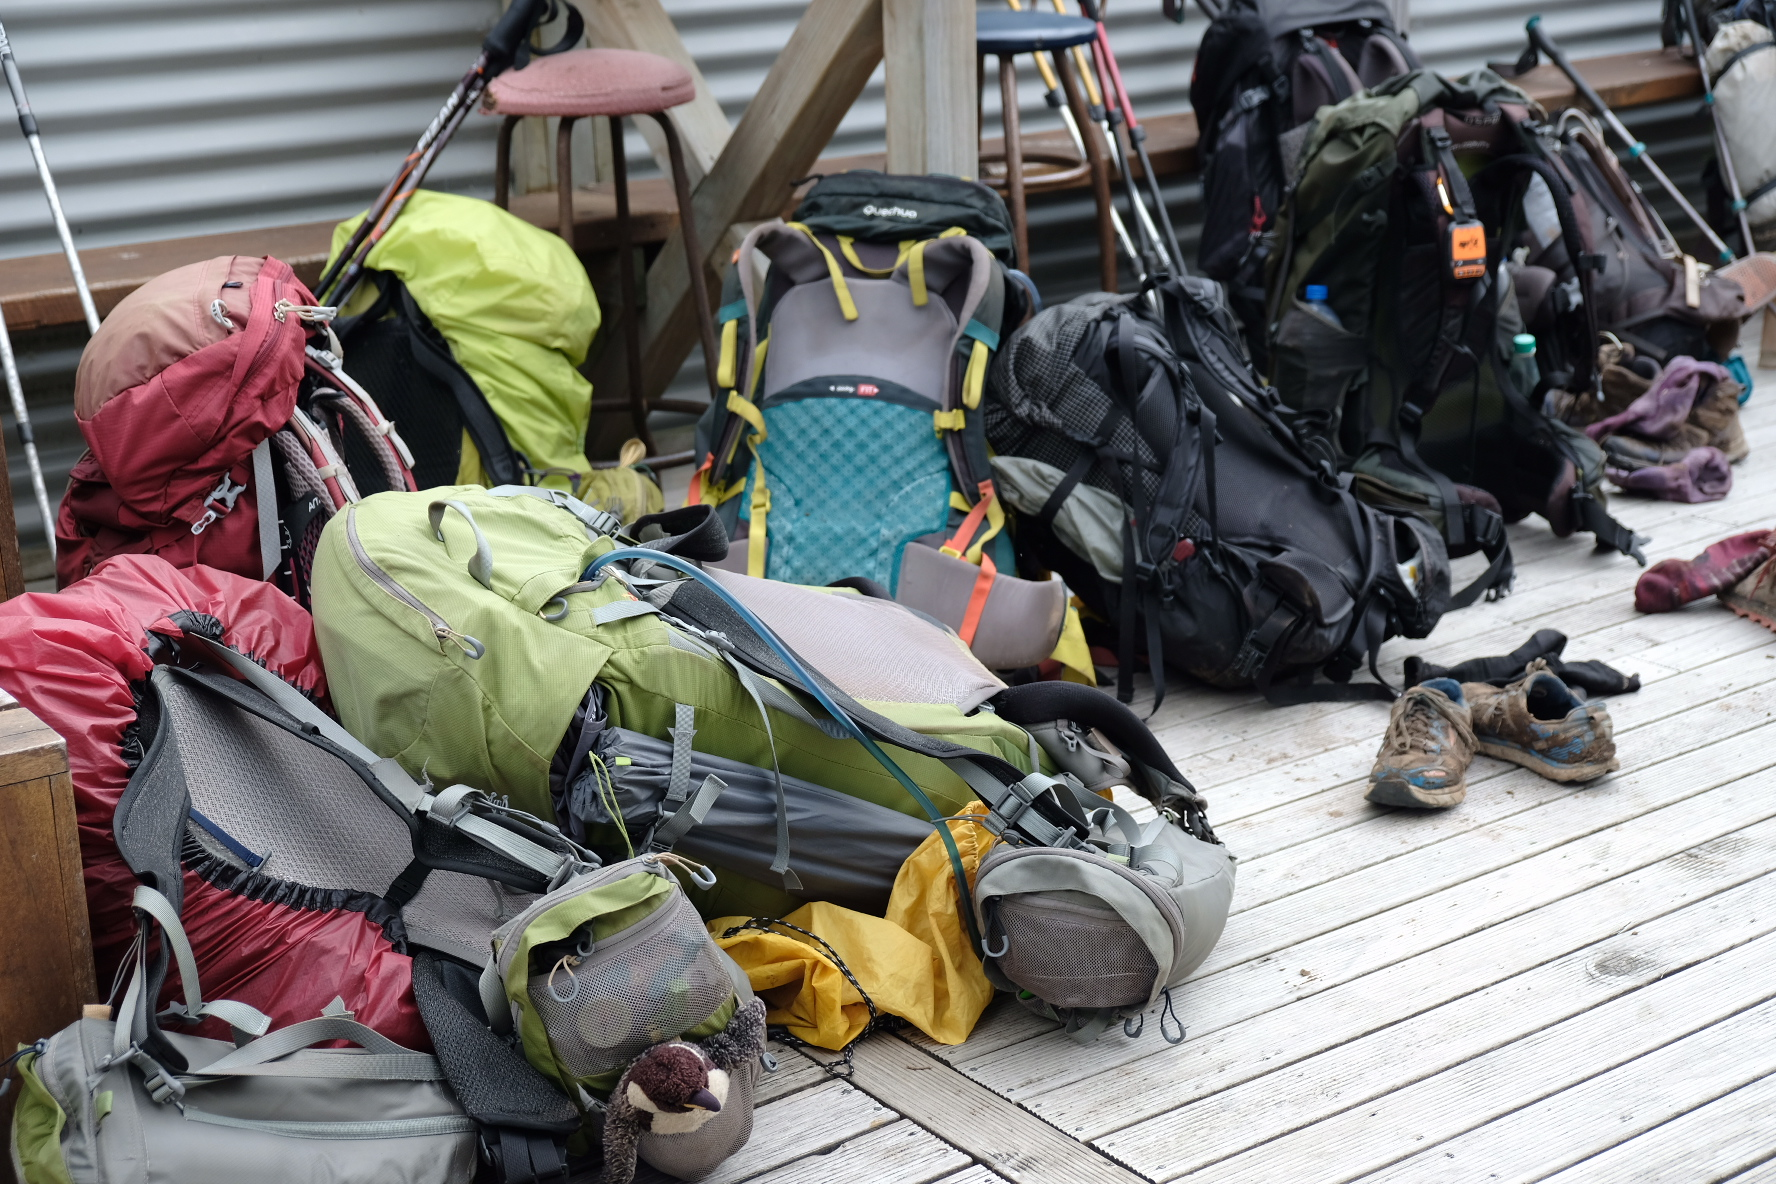 A small fortune of tramping gear